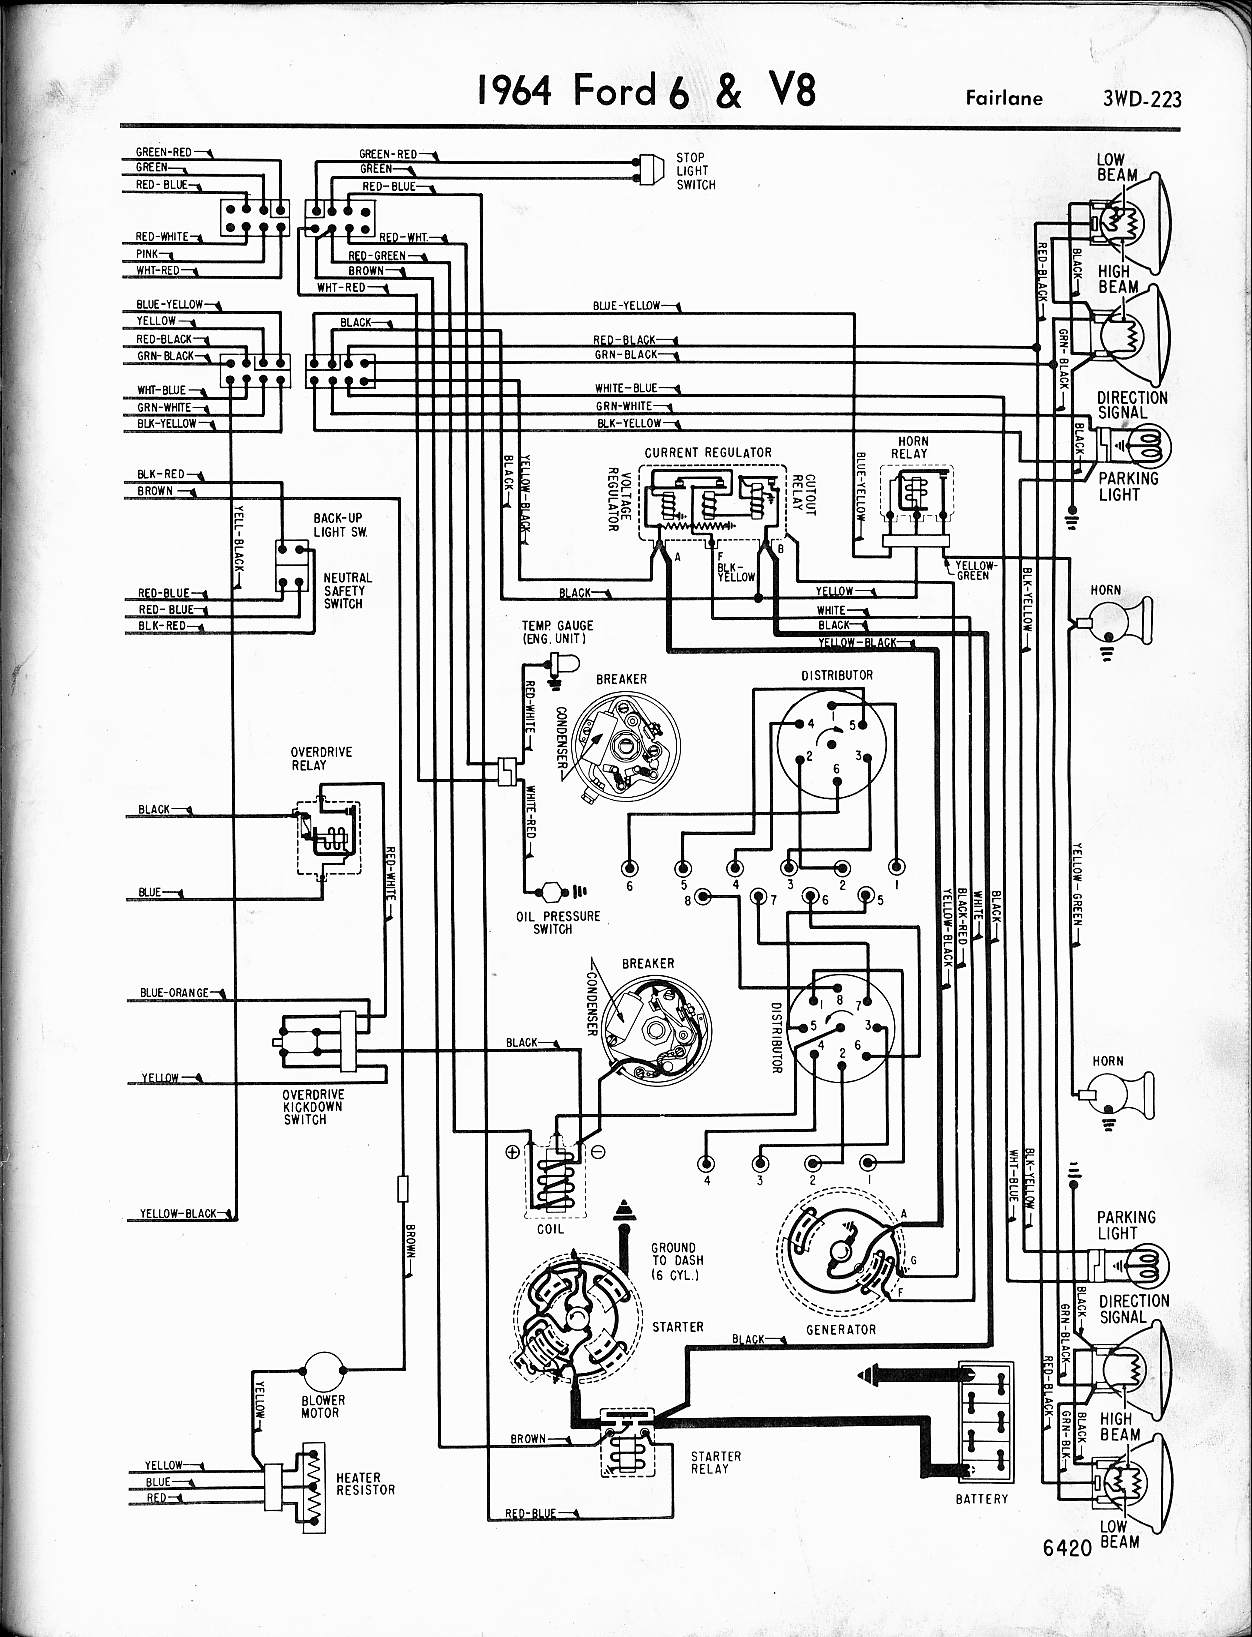 1964 ford falcon fuse box diagram i need an electrical schematic for a 1964 ford falcon 1964 buick skylark fuse box diagram wiring schematic